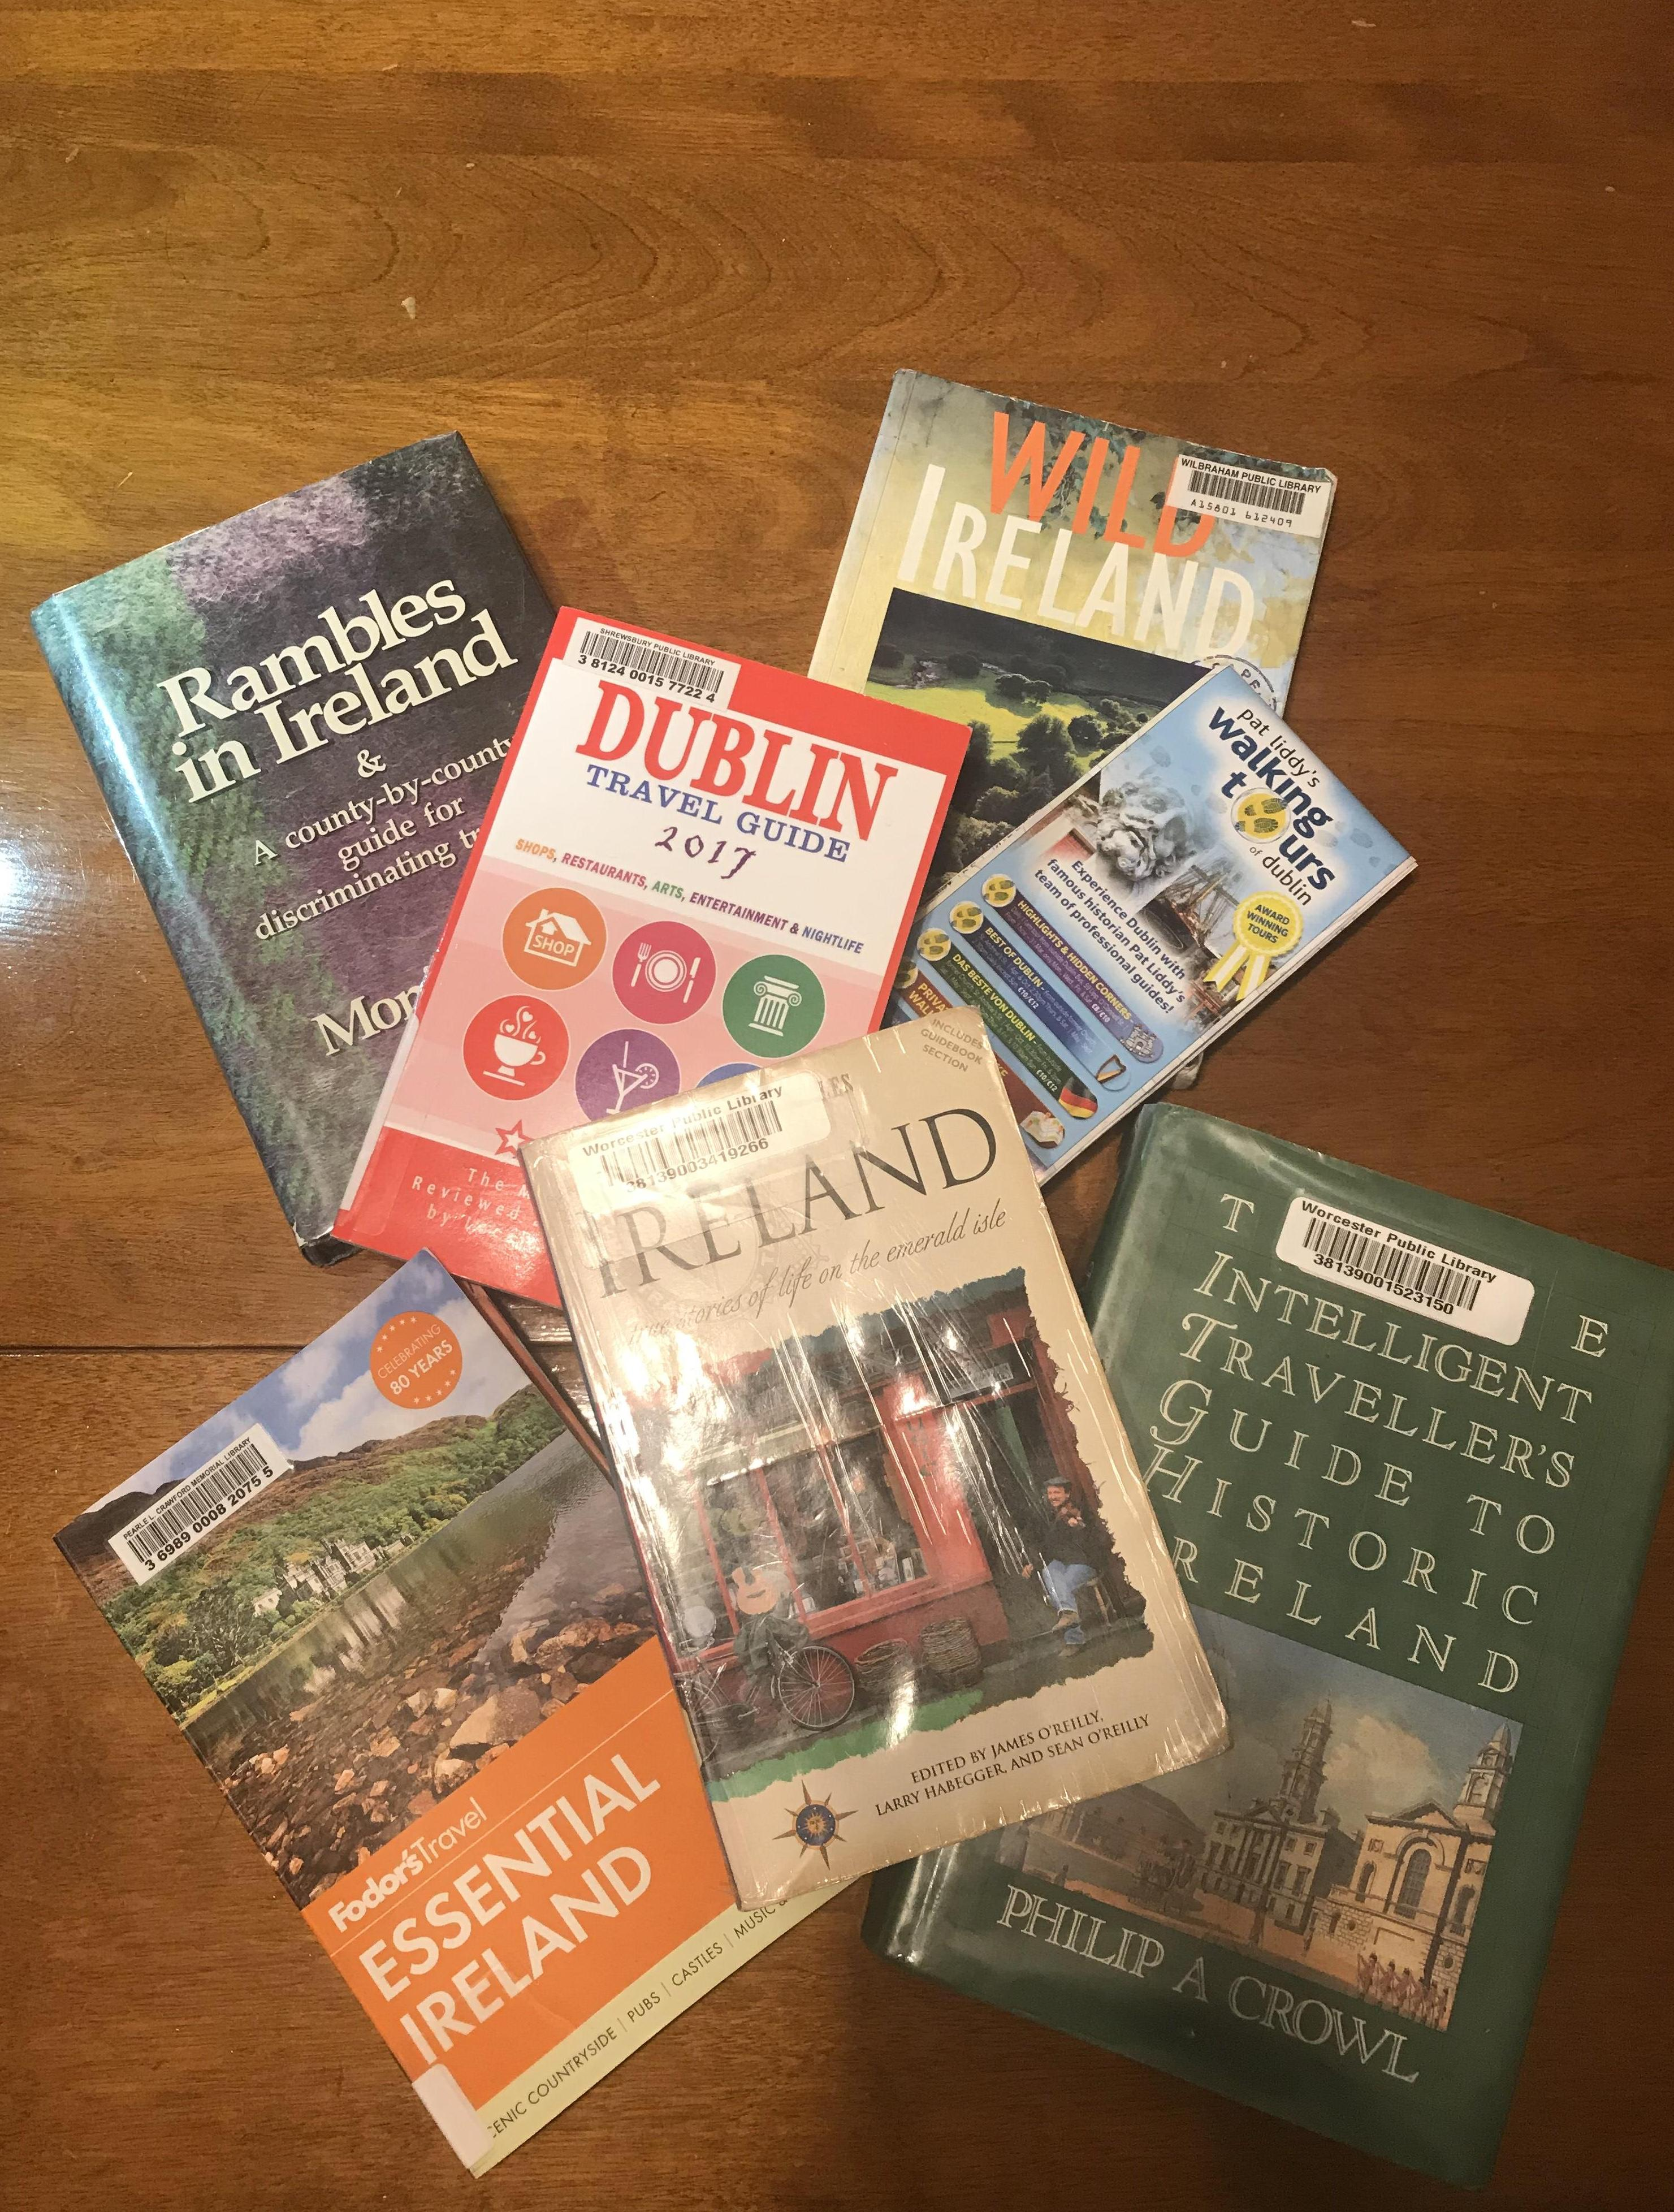 CAPAStudyAbroad_Dublin_Spring2018_From Brandon Mooney - Books about Dublin.jpeg